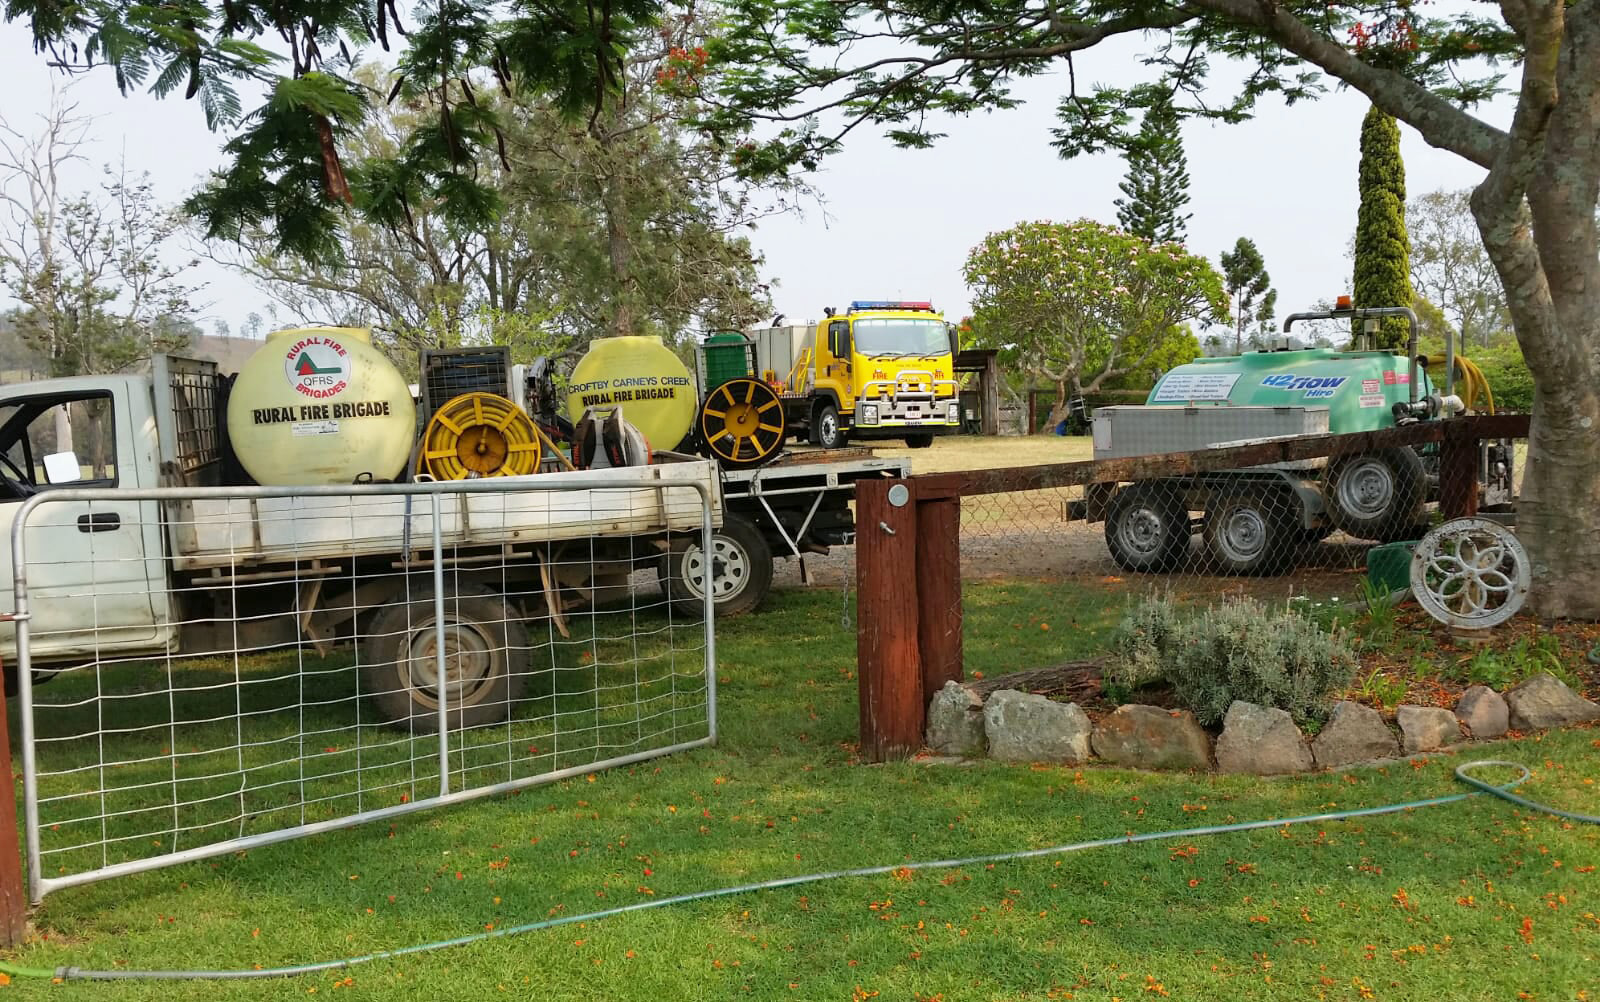 H2flow Hire's water trailer with Rural Fire Brigade transport.